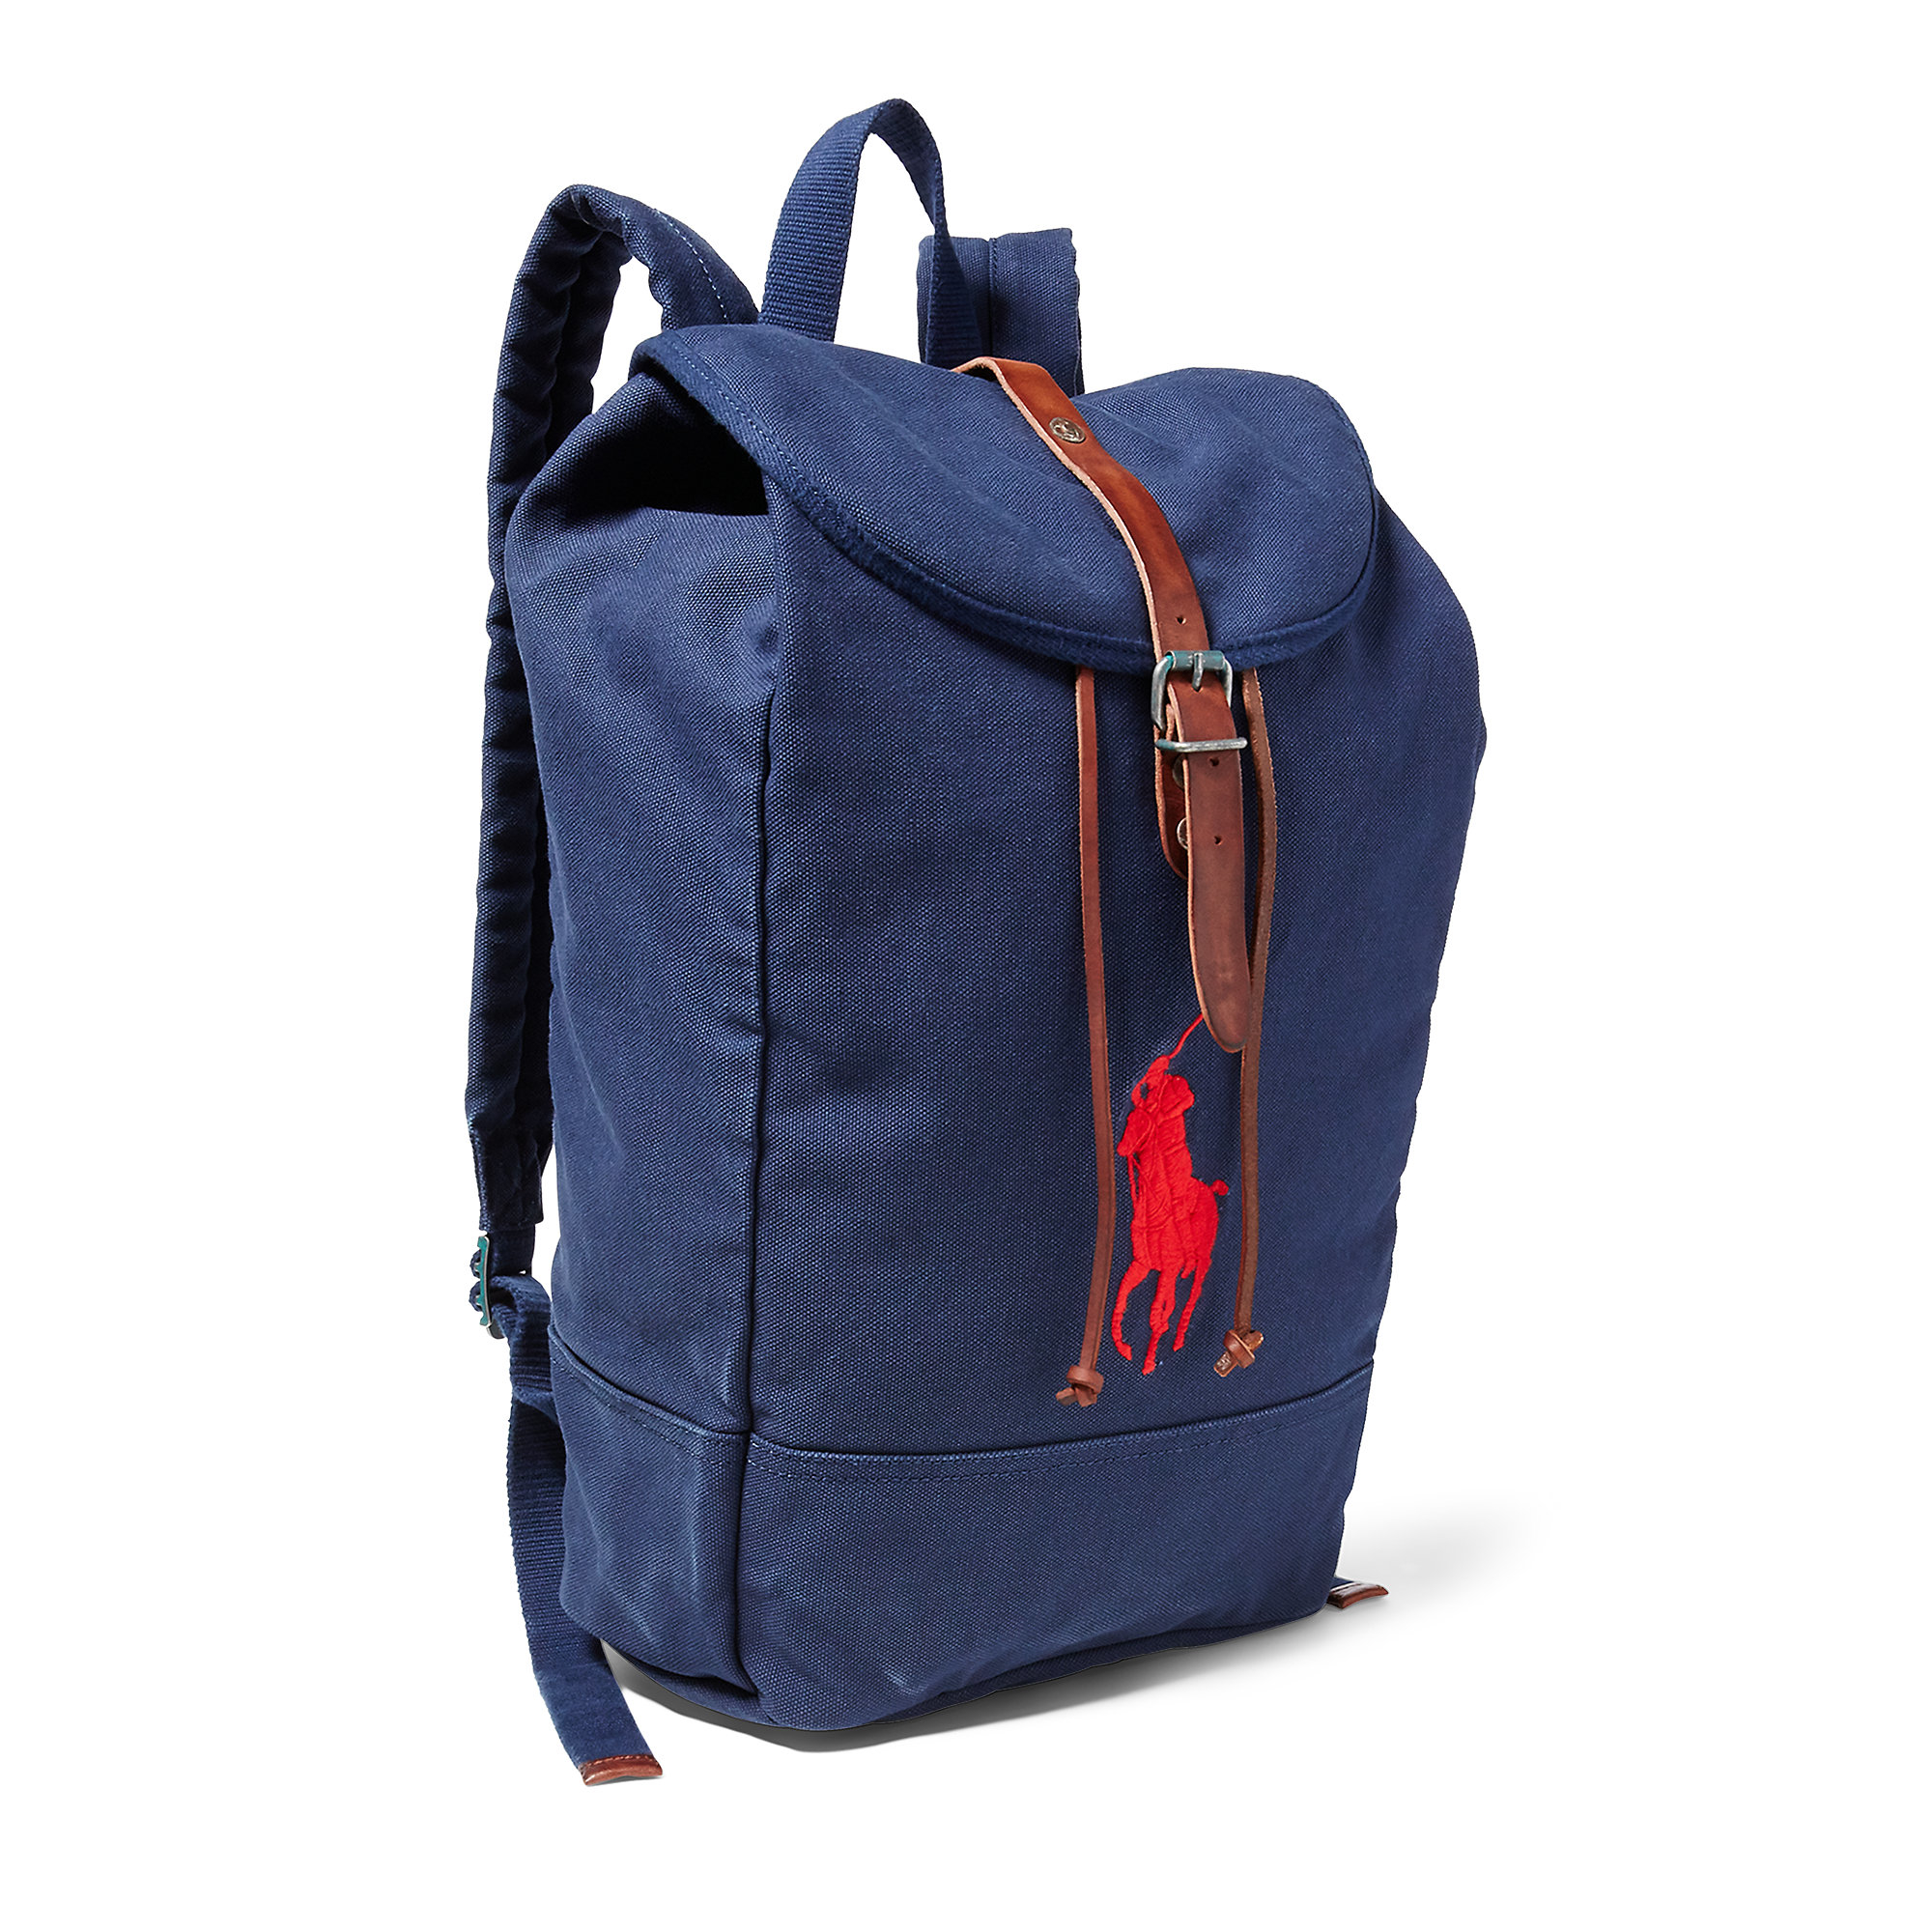 Lyst polo ralph lauren big pony canvas backpack in blue for men jpg  2000x2000 Polo canvas e016985efc918